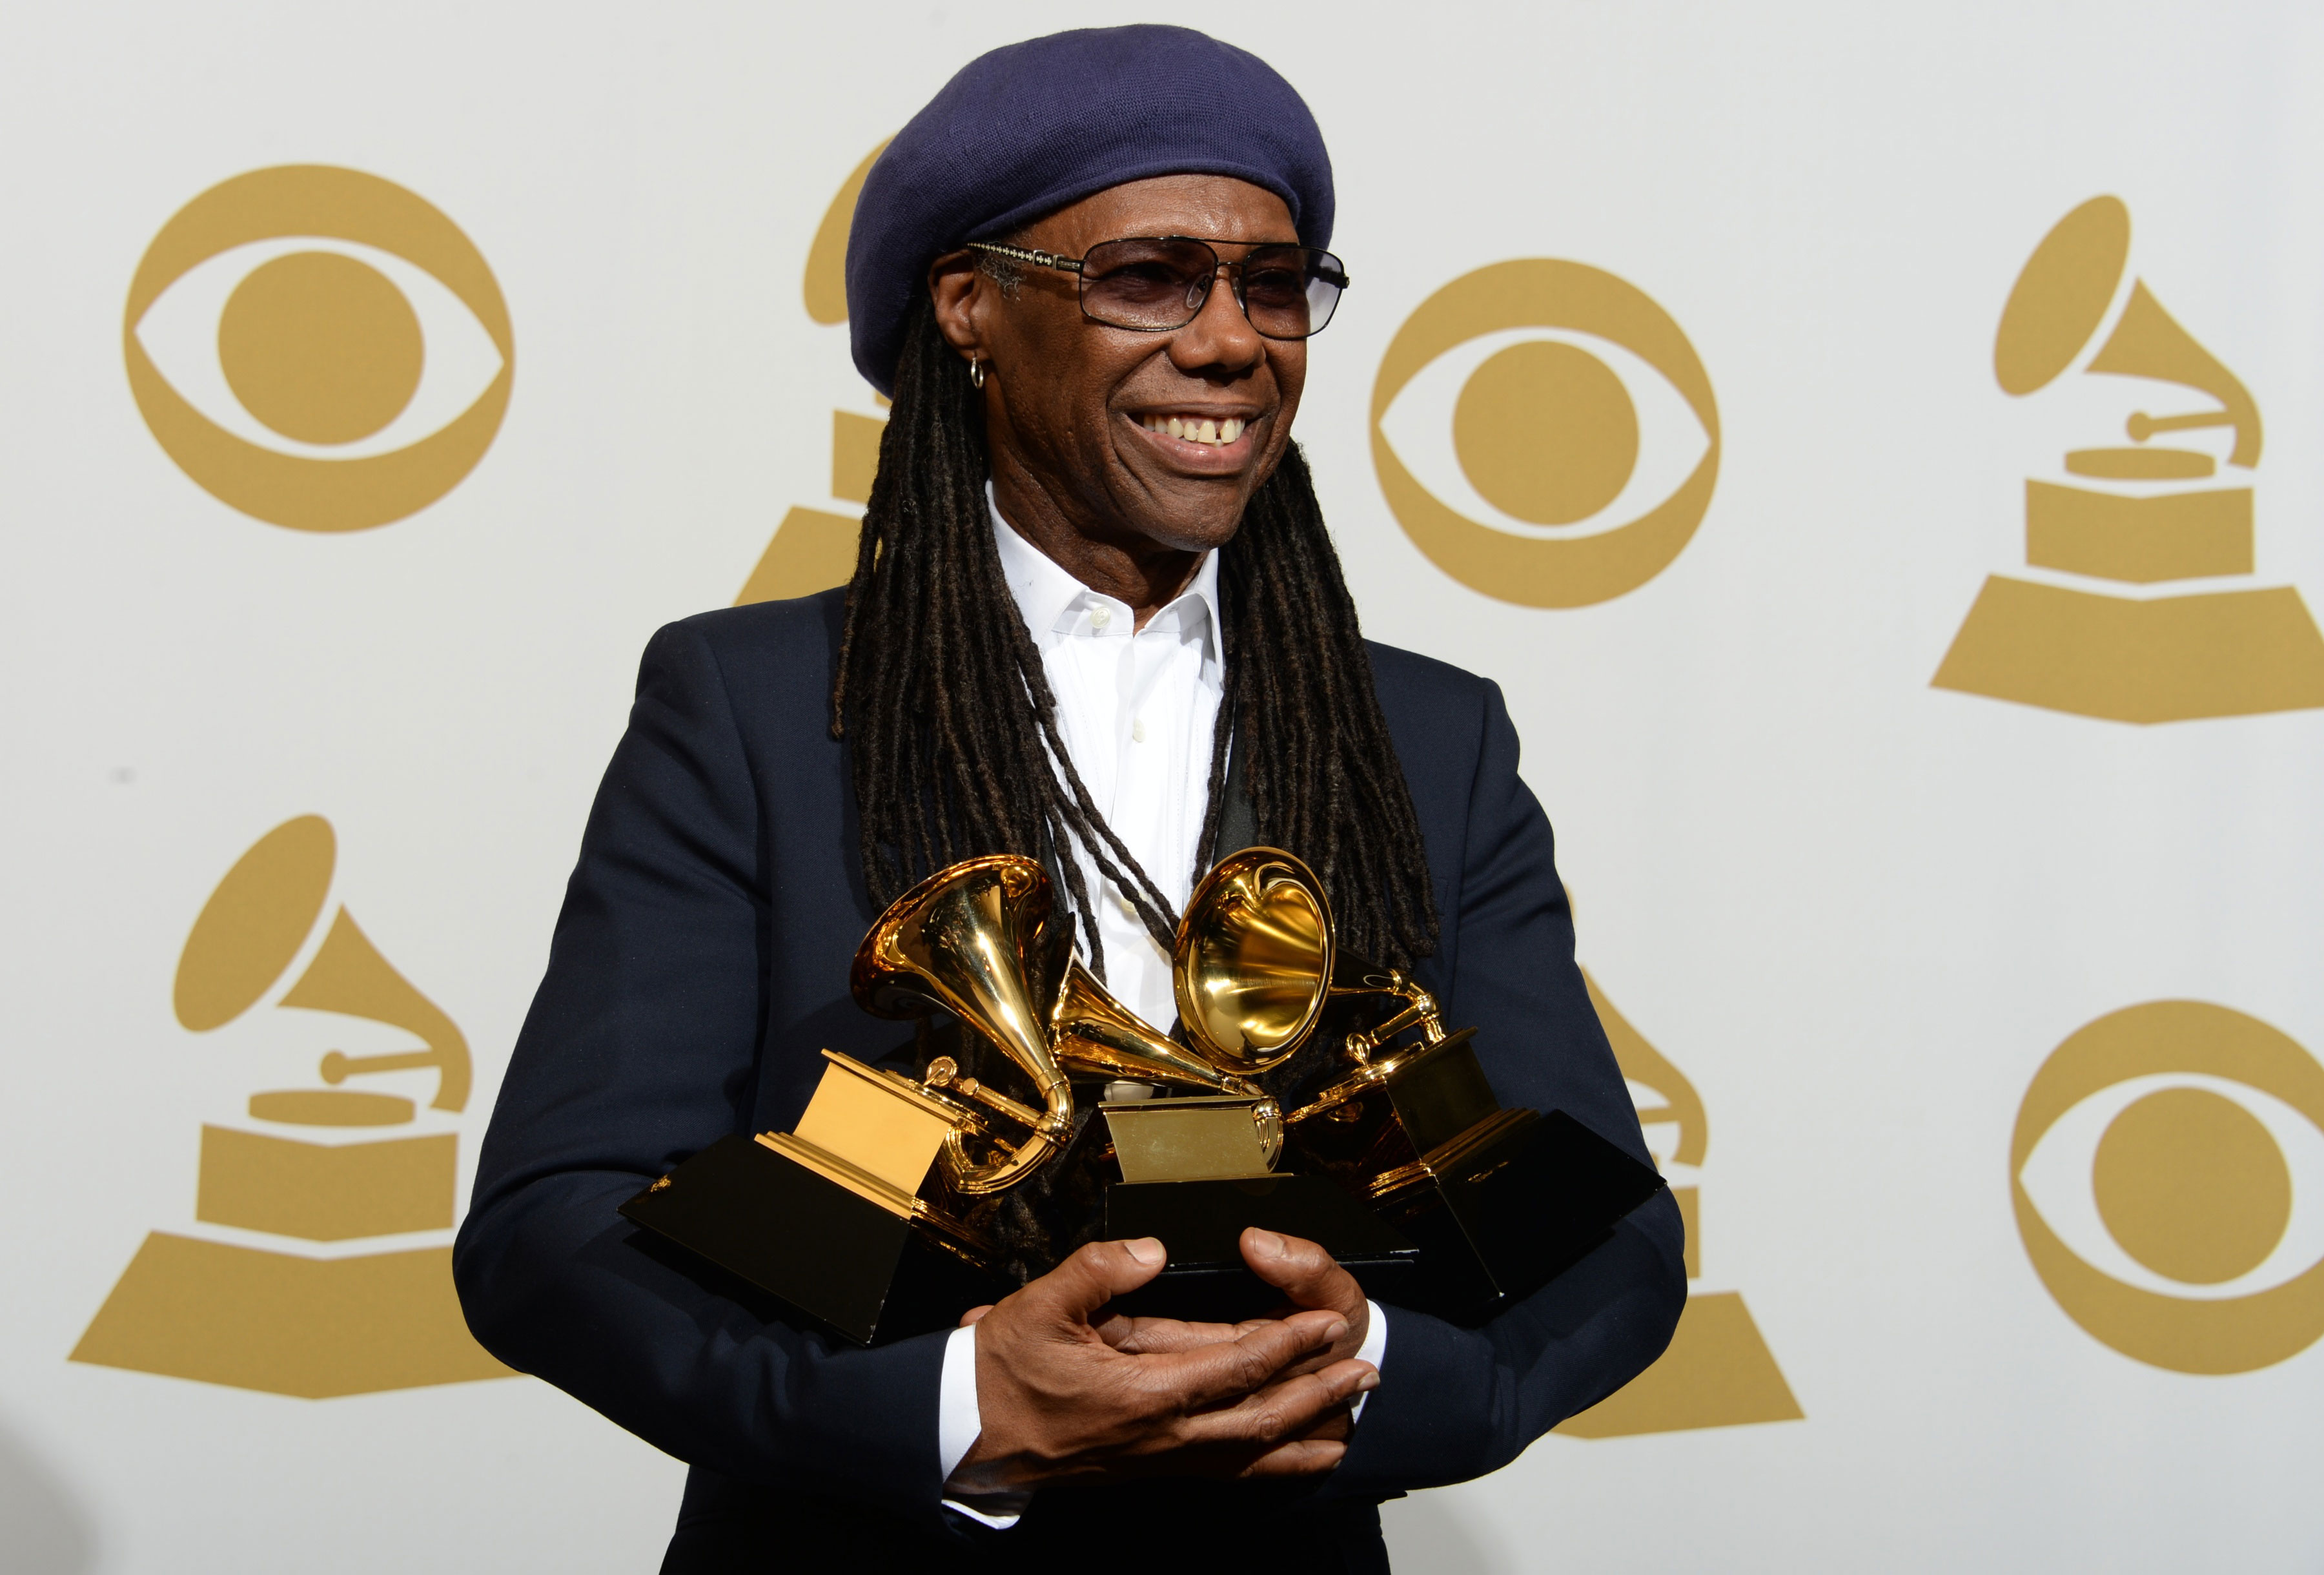 Daft Punk collaborator Nile Rodgers grammys